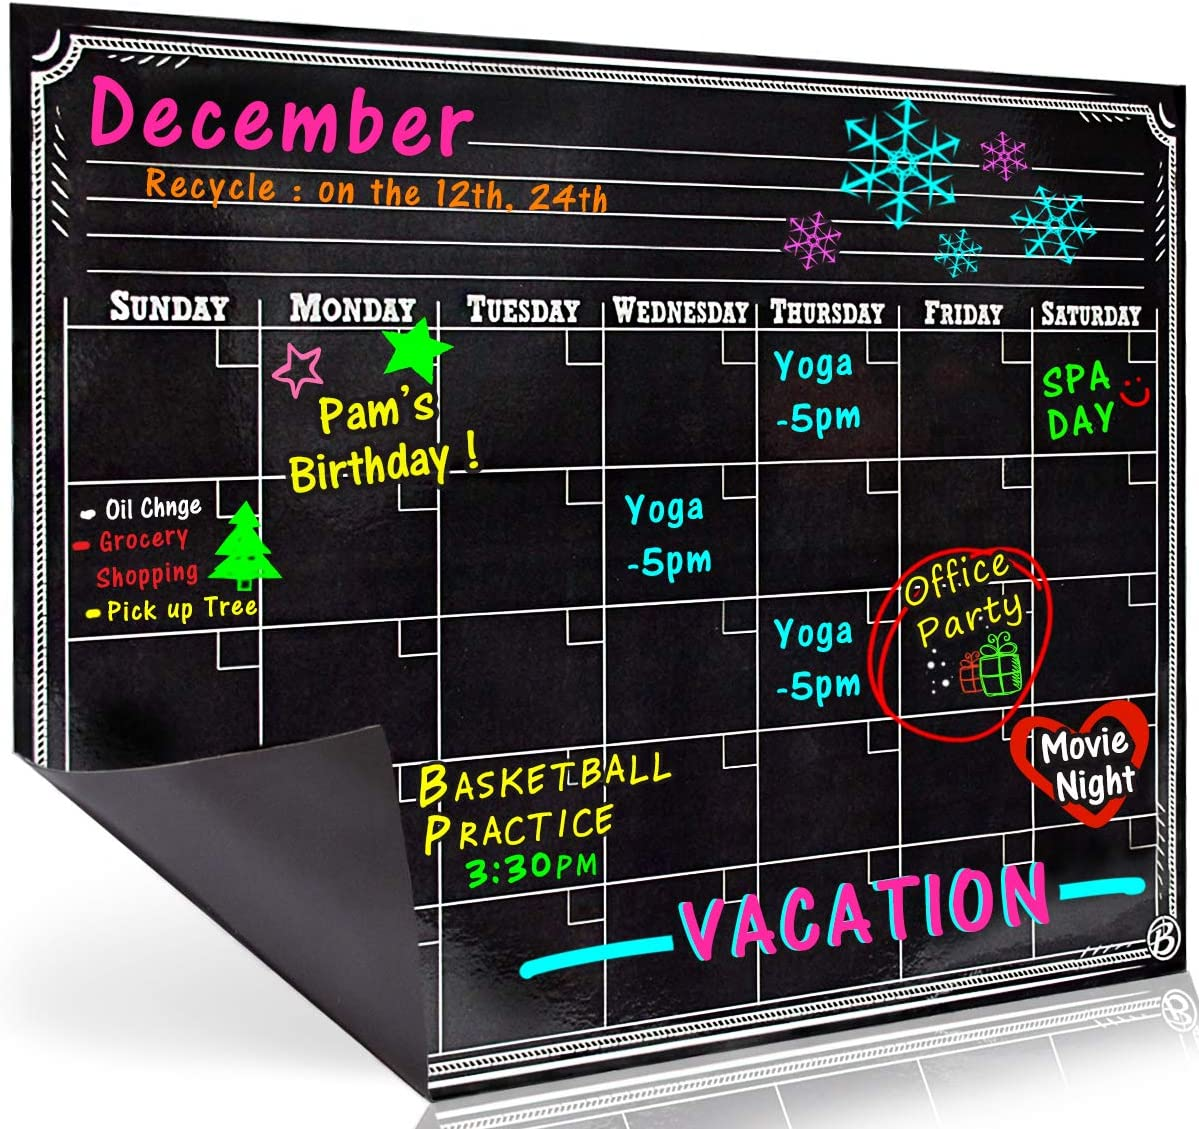 Bigtime Signs Dry Erase Magnetic Refrigerator Calendar Board - Black Chalkboard Look Printed Design - Monthly for Kitchen Fridge| 12 inch x 16 inch - Use with Wet Wipe Fluorescent or Neon Markers